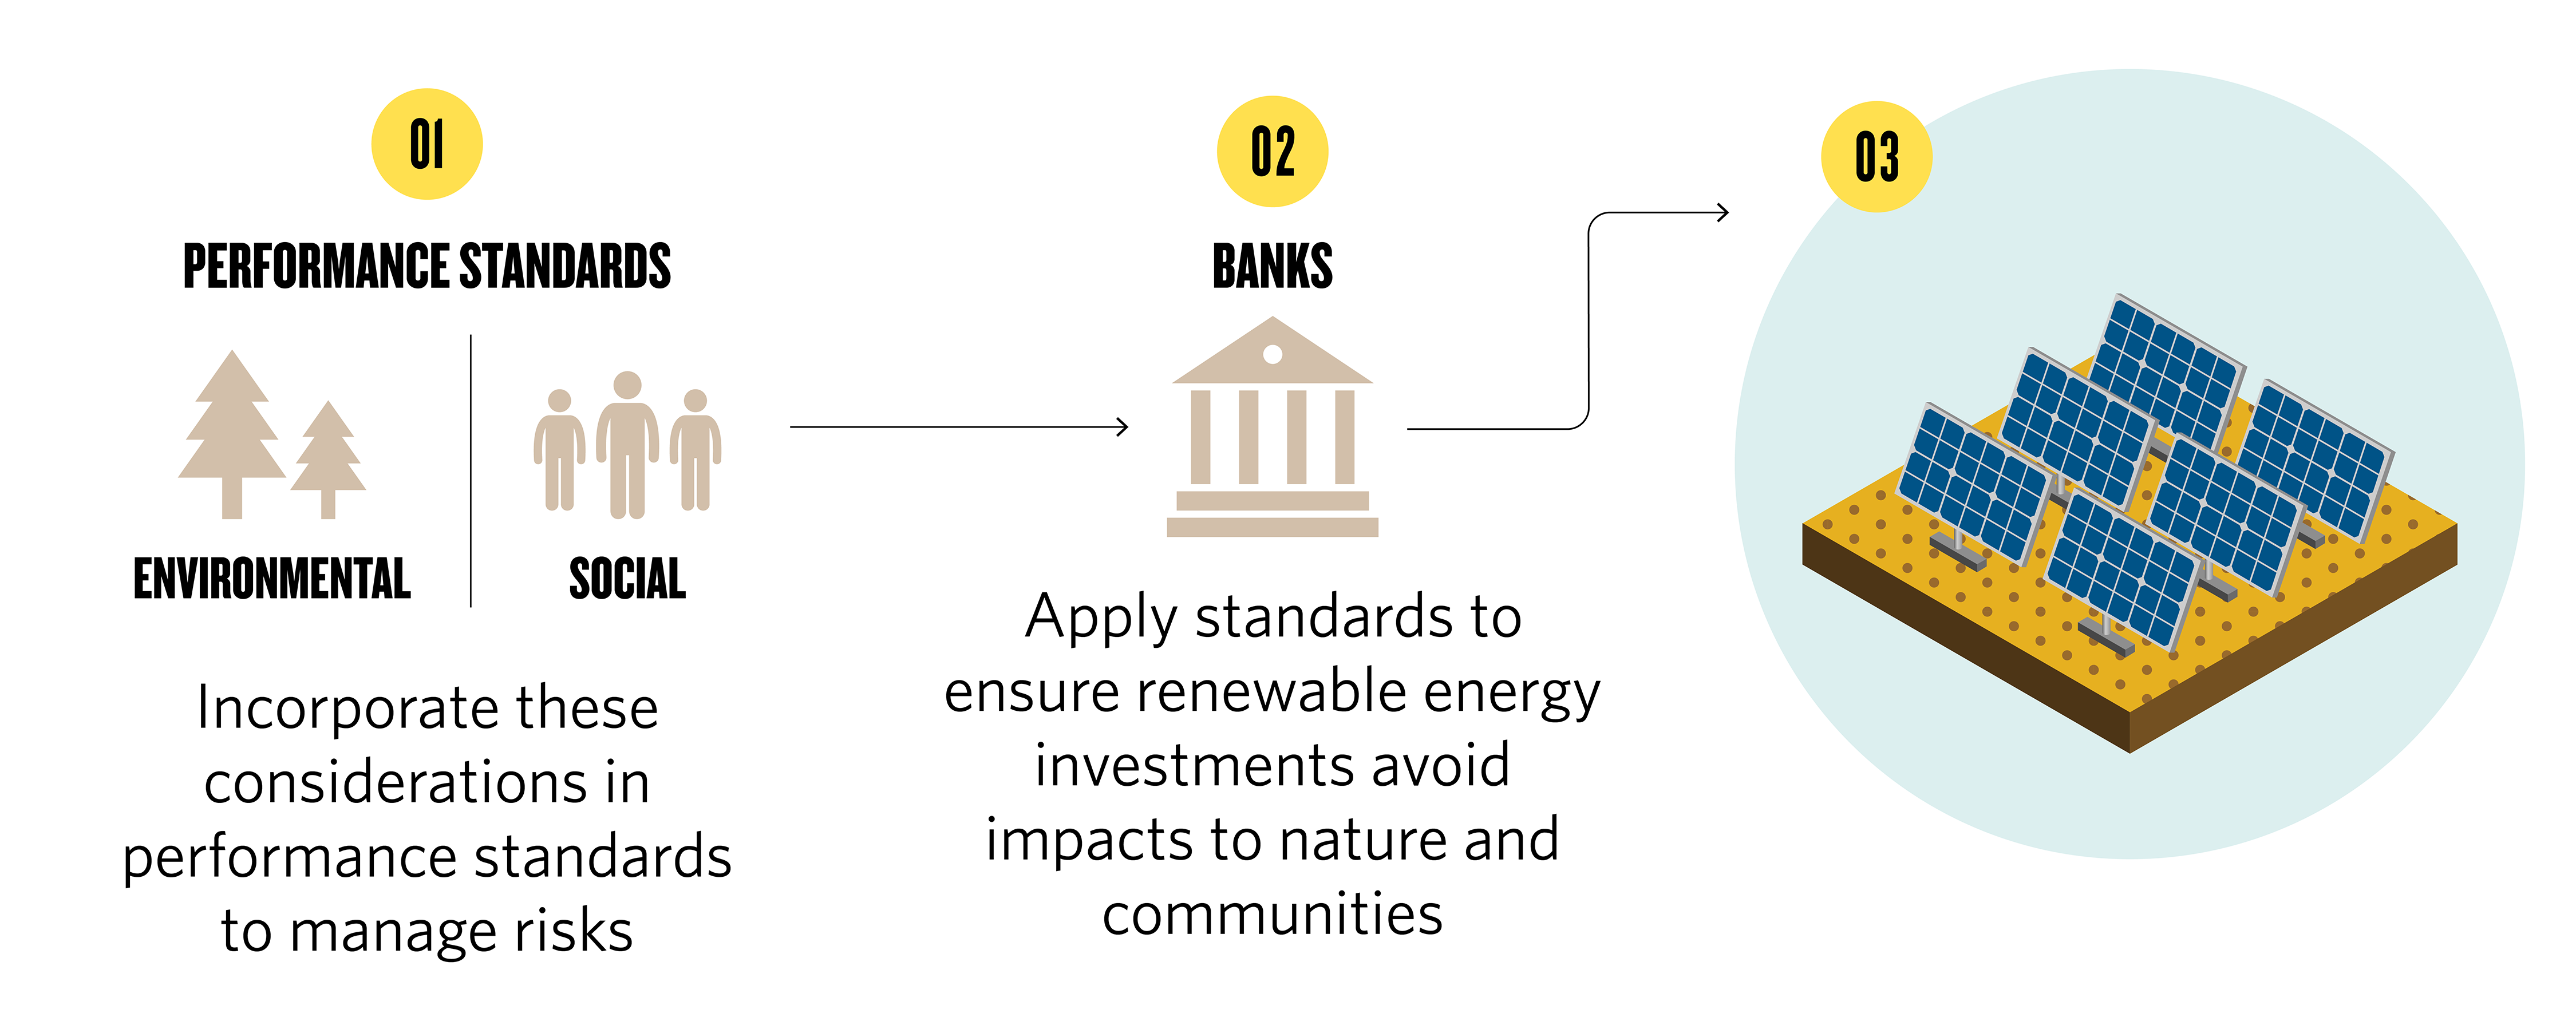 a flowchart depicting performance standards that include environmental and social considerations being applied to financial institutions' investment in renewable energy projects, avoiding negative impacts to nature and communities